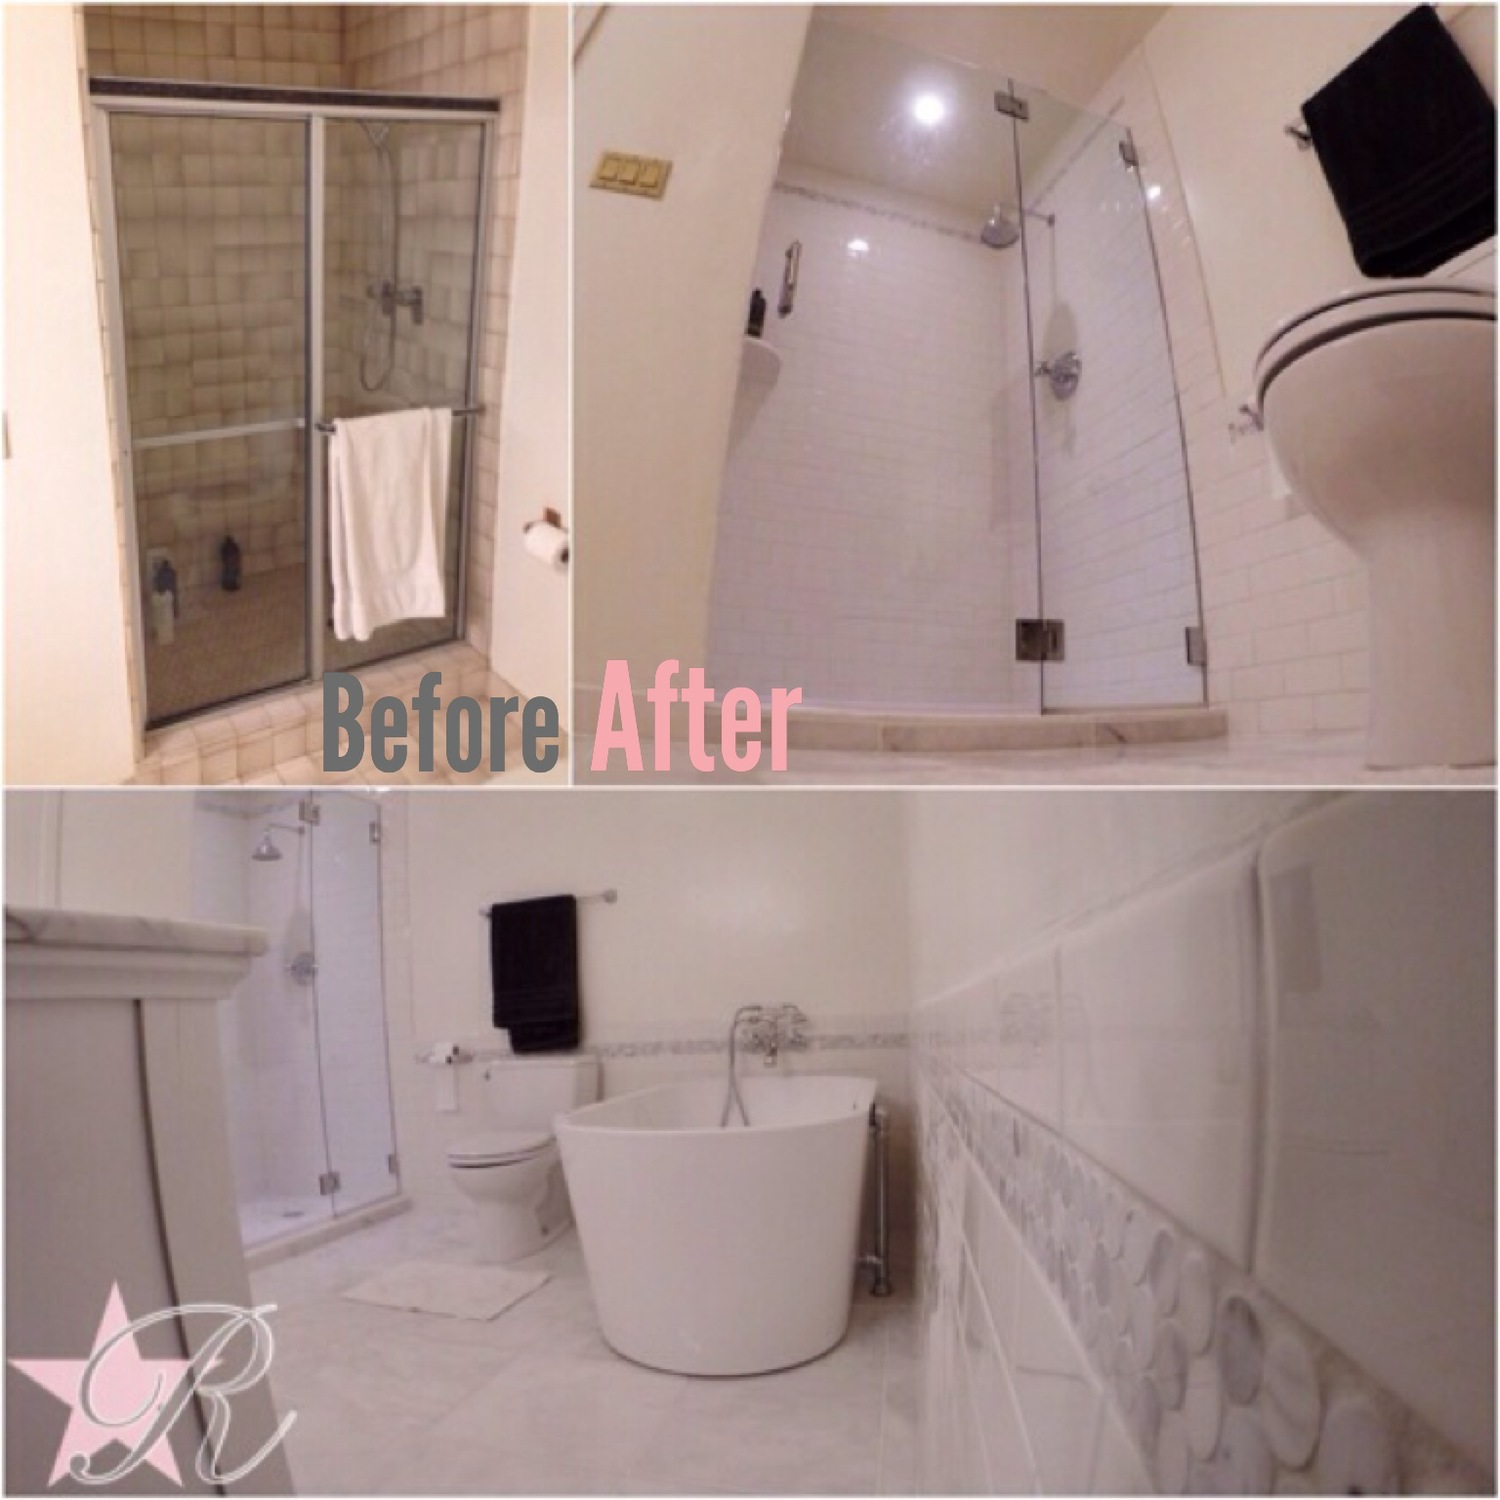 Bathroom Renovation Rockstar Remodel - Bathroom remodel beaverton oregon